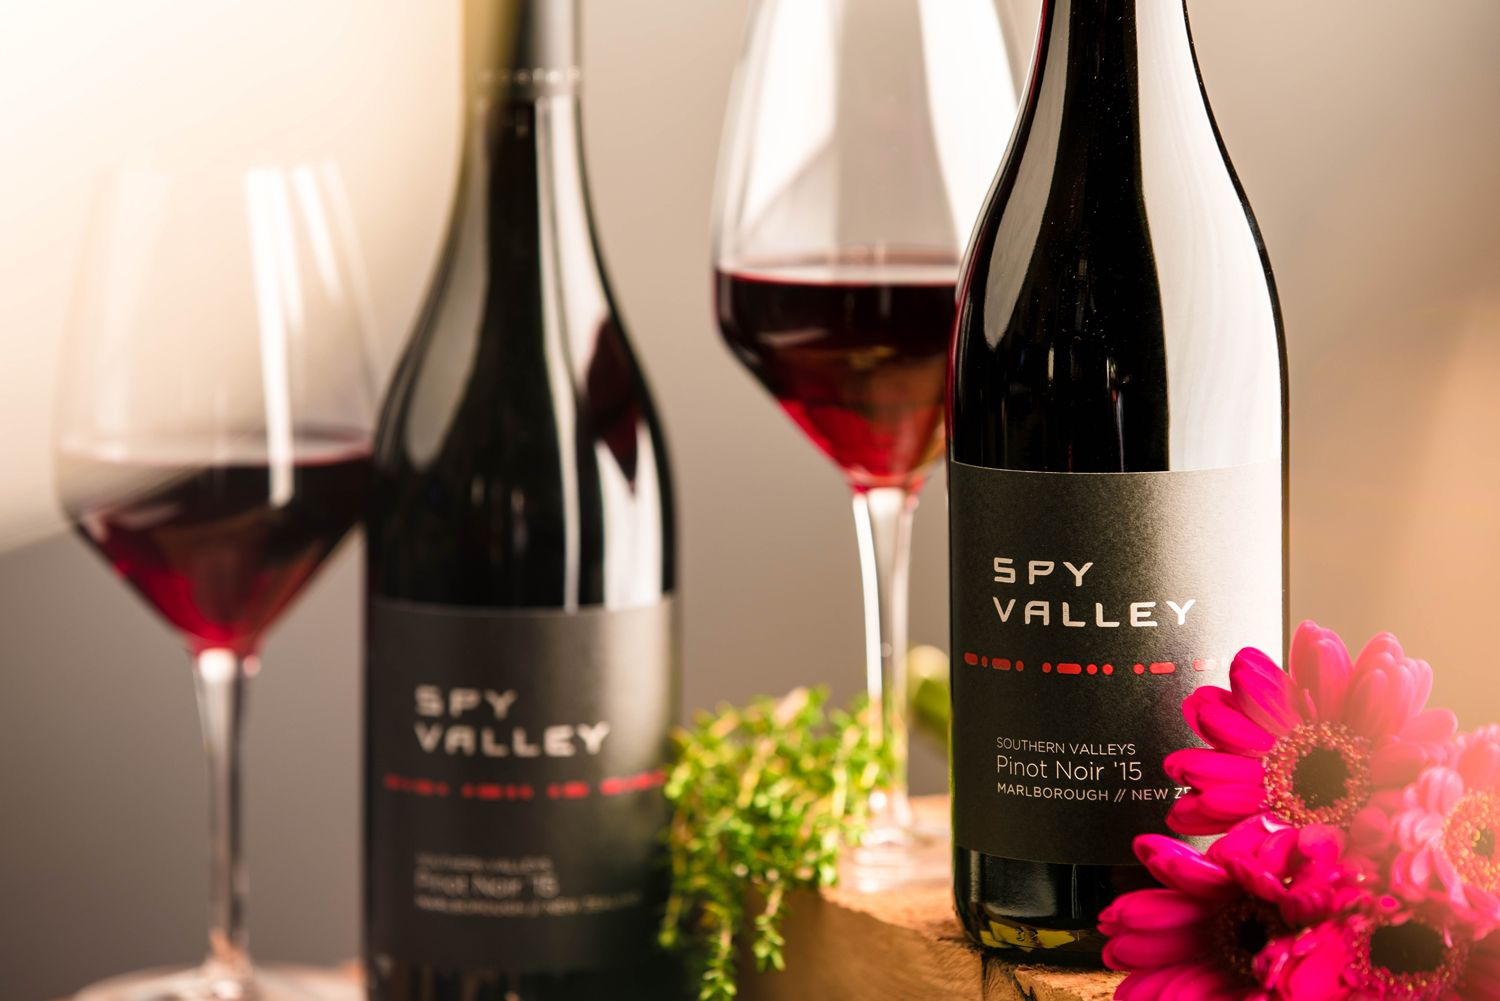 5 Award-Winning Pinot Noirs To Drink Right Now